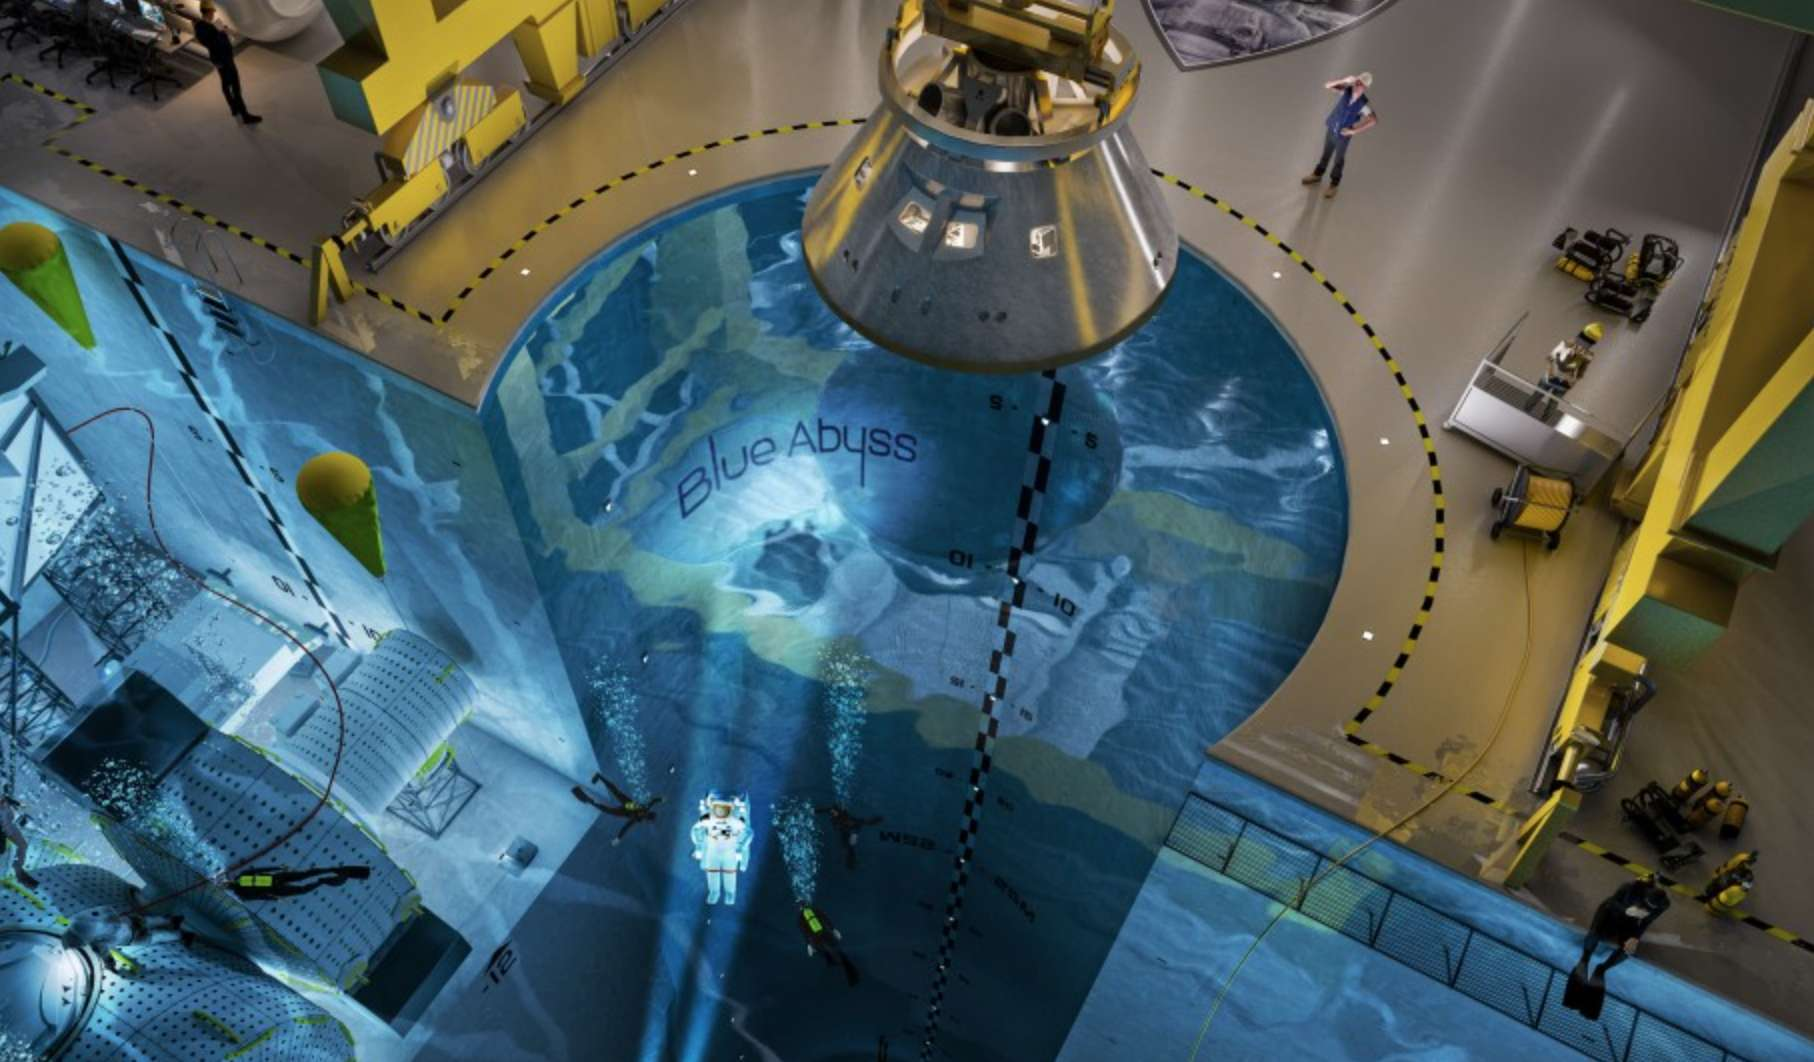 Take the plunge! England's Blue Abyss training pool will be the world's deepest